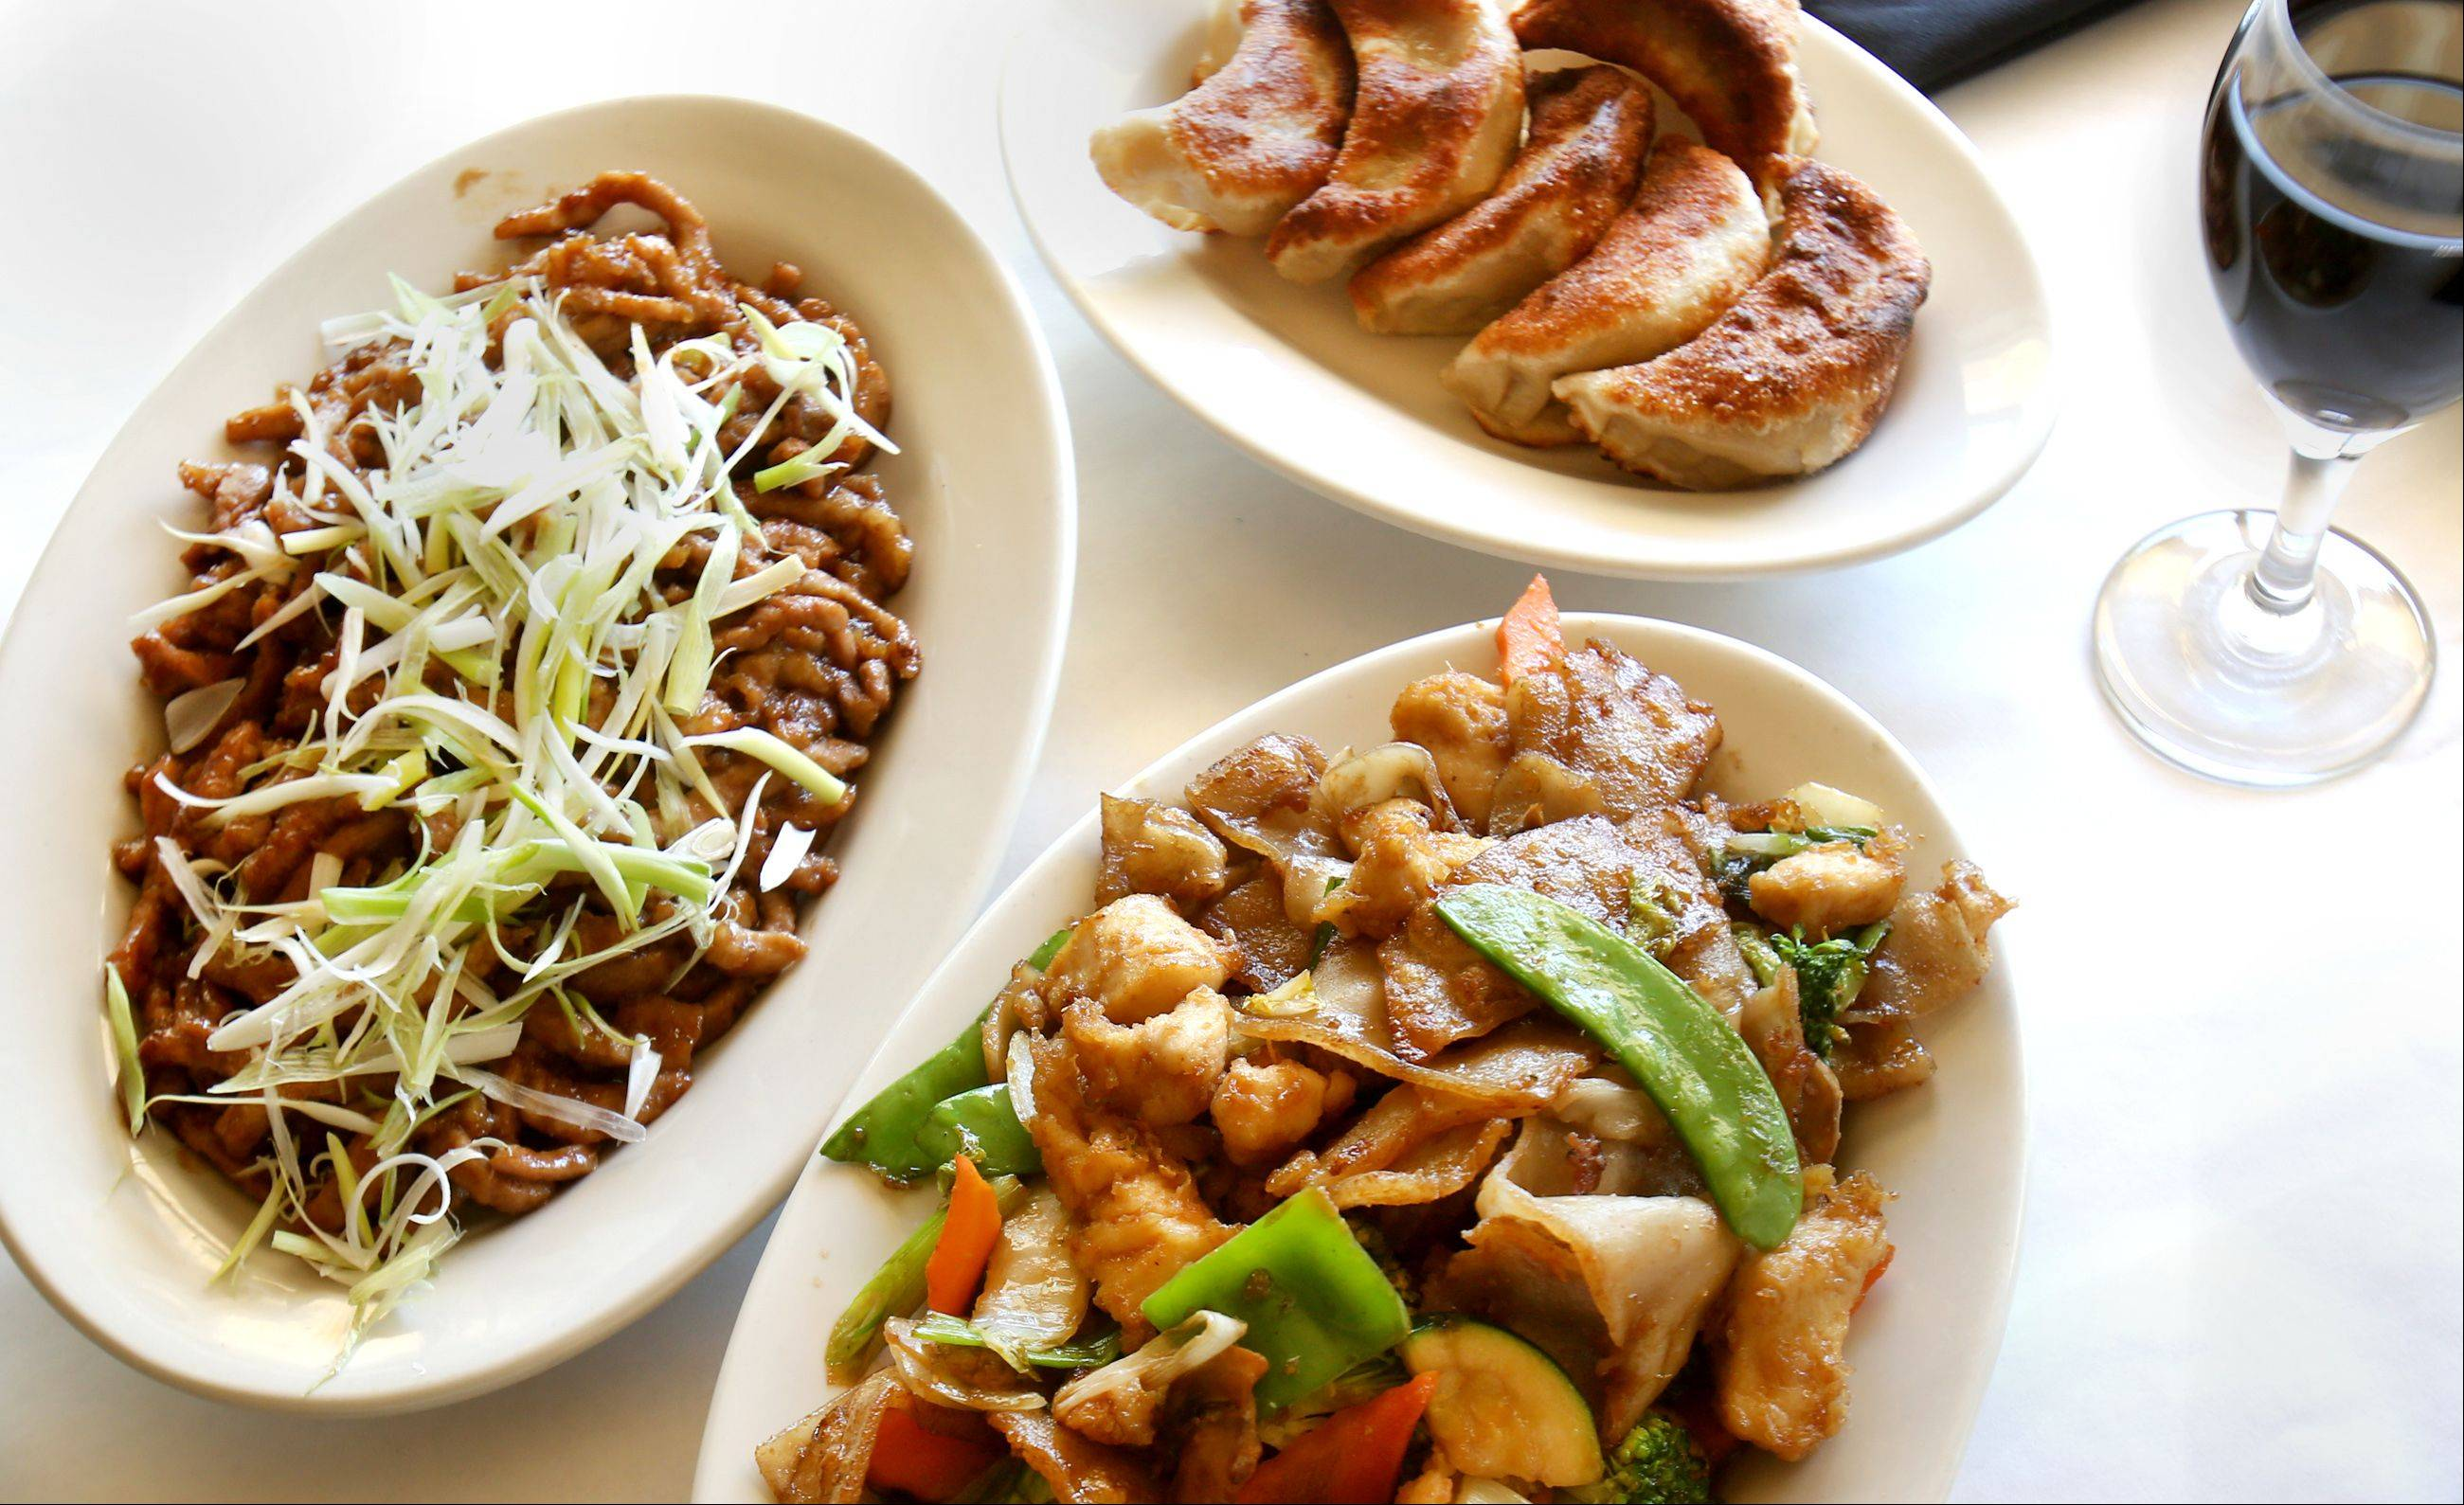 Mandarin pork, chicken chow fun and pot stickers are a delicious trio at Hua Ting in Hinsdale.